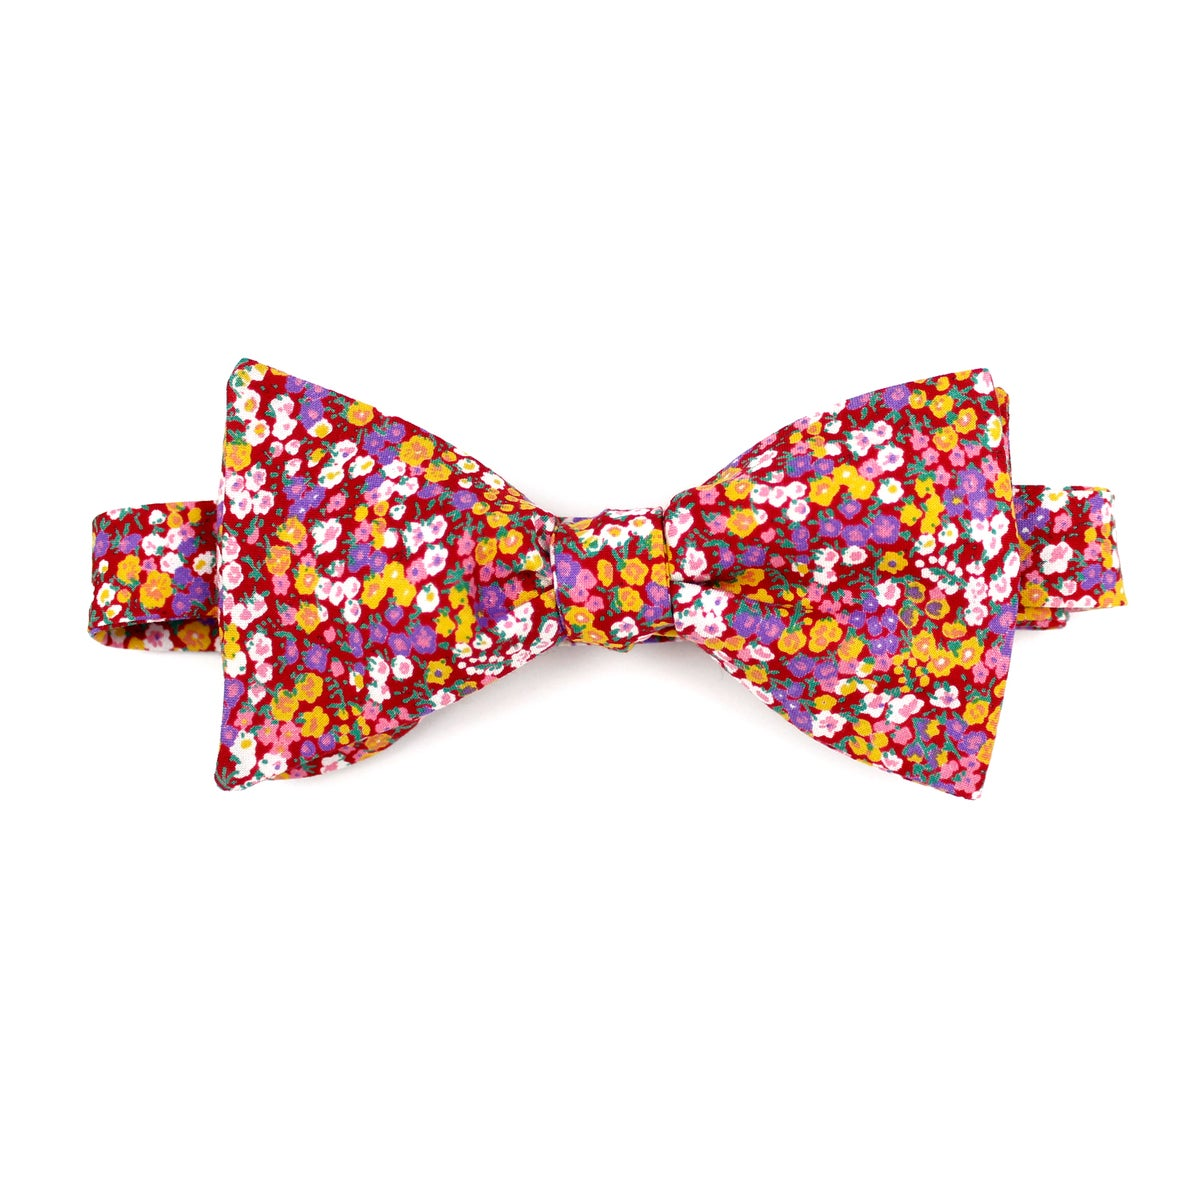 Image of Poppy Floral Bow Tie